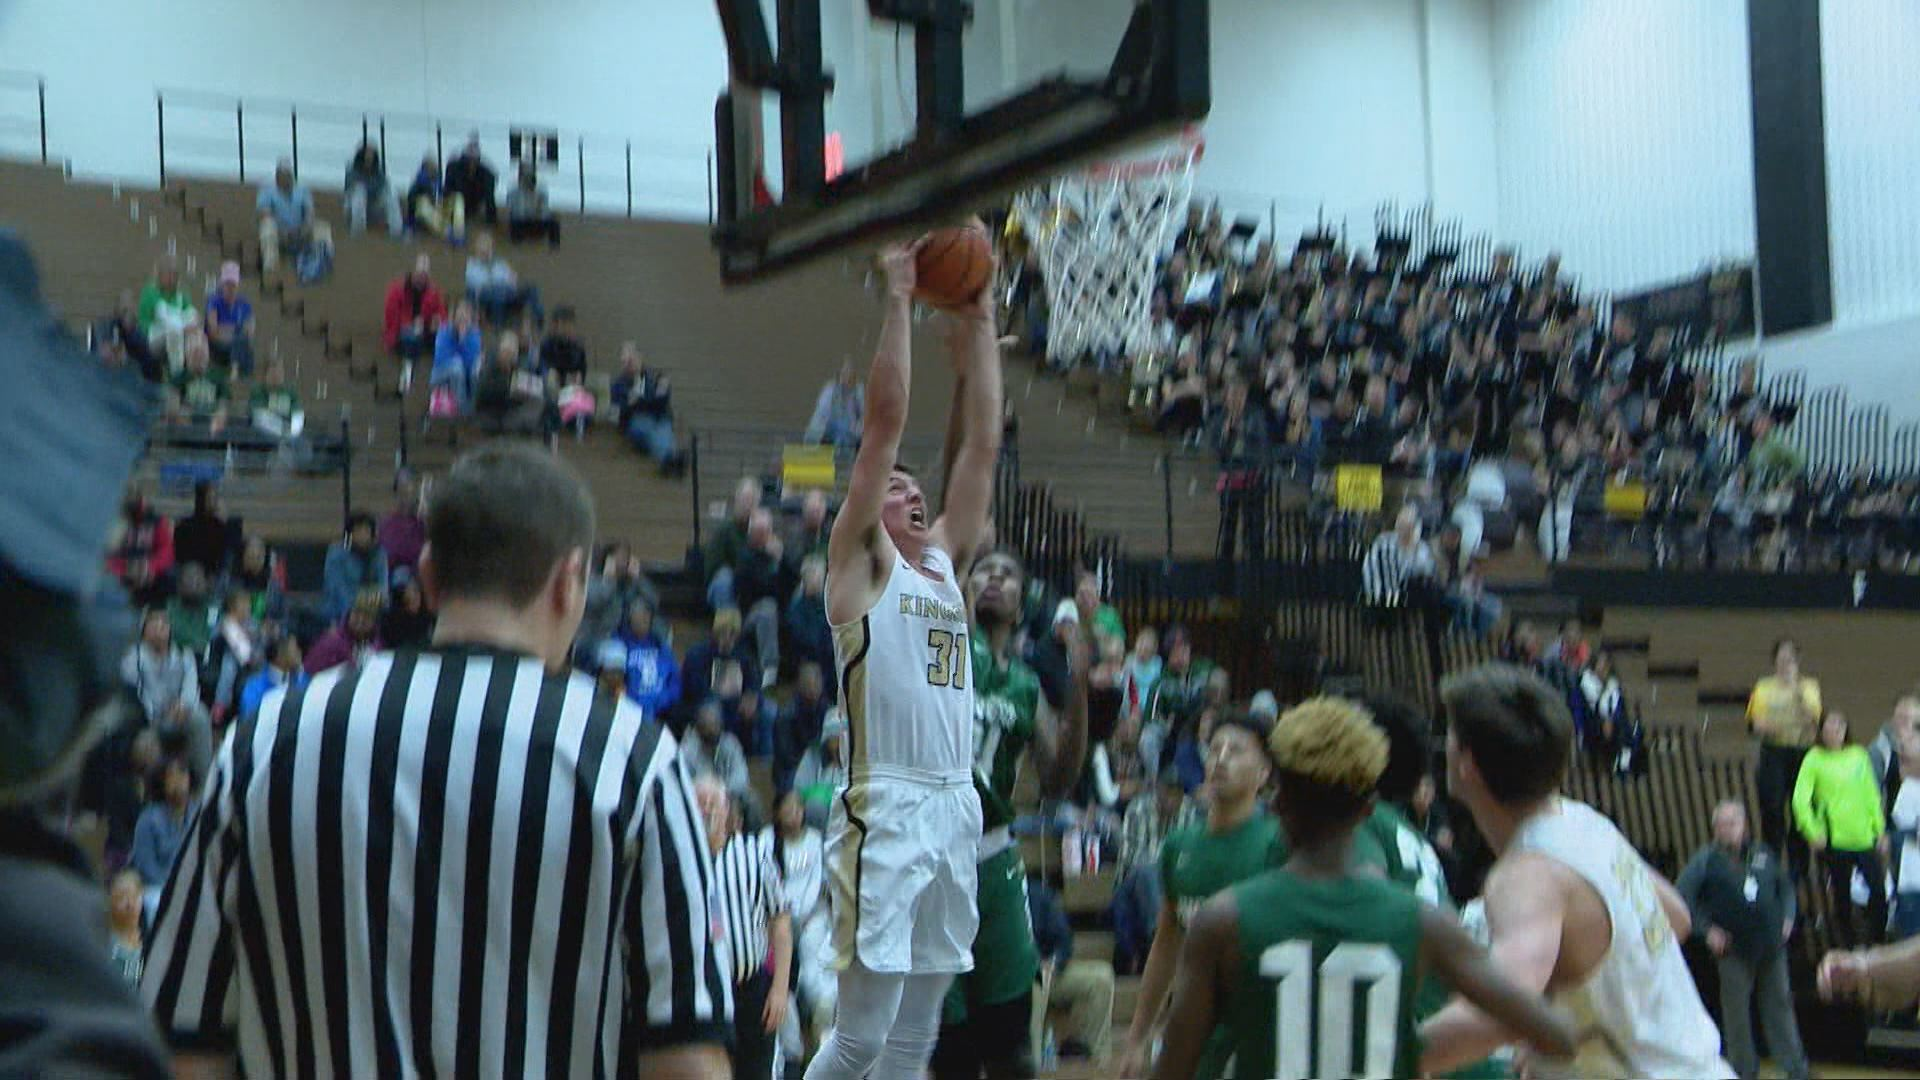 Penn falls to the Panthers, 64-60 // WSBT 22 Photo<p></p>